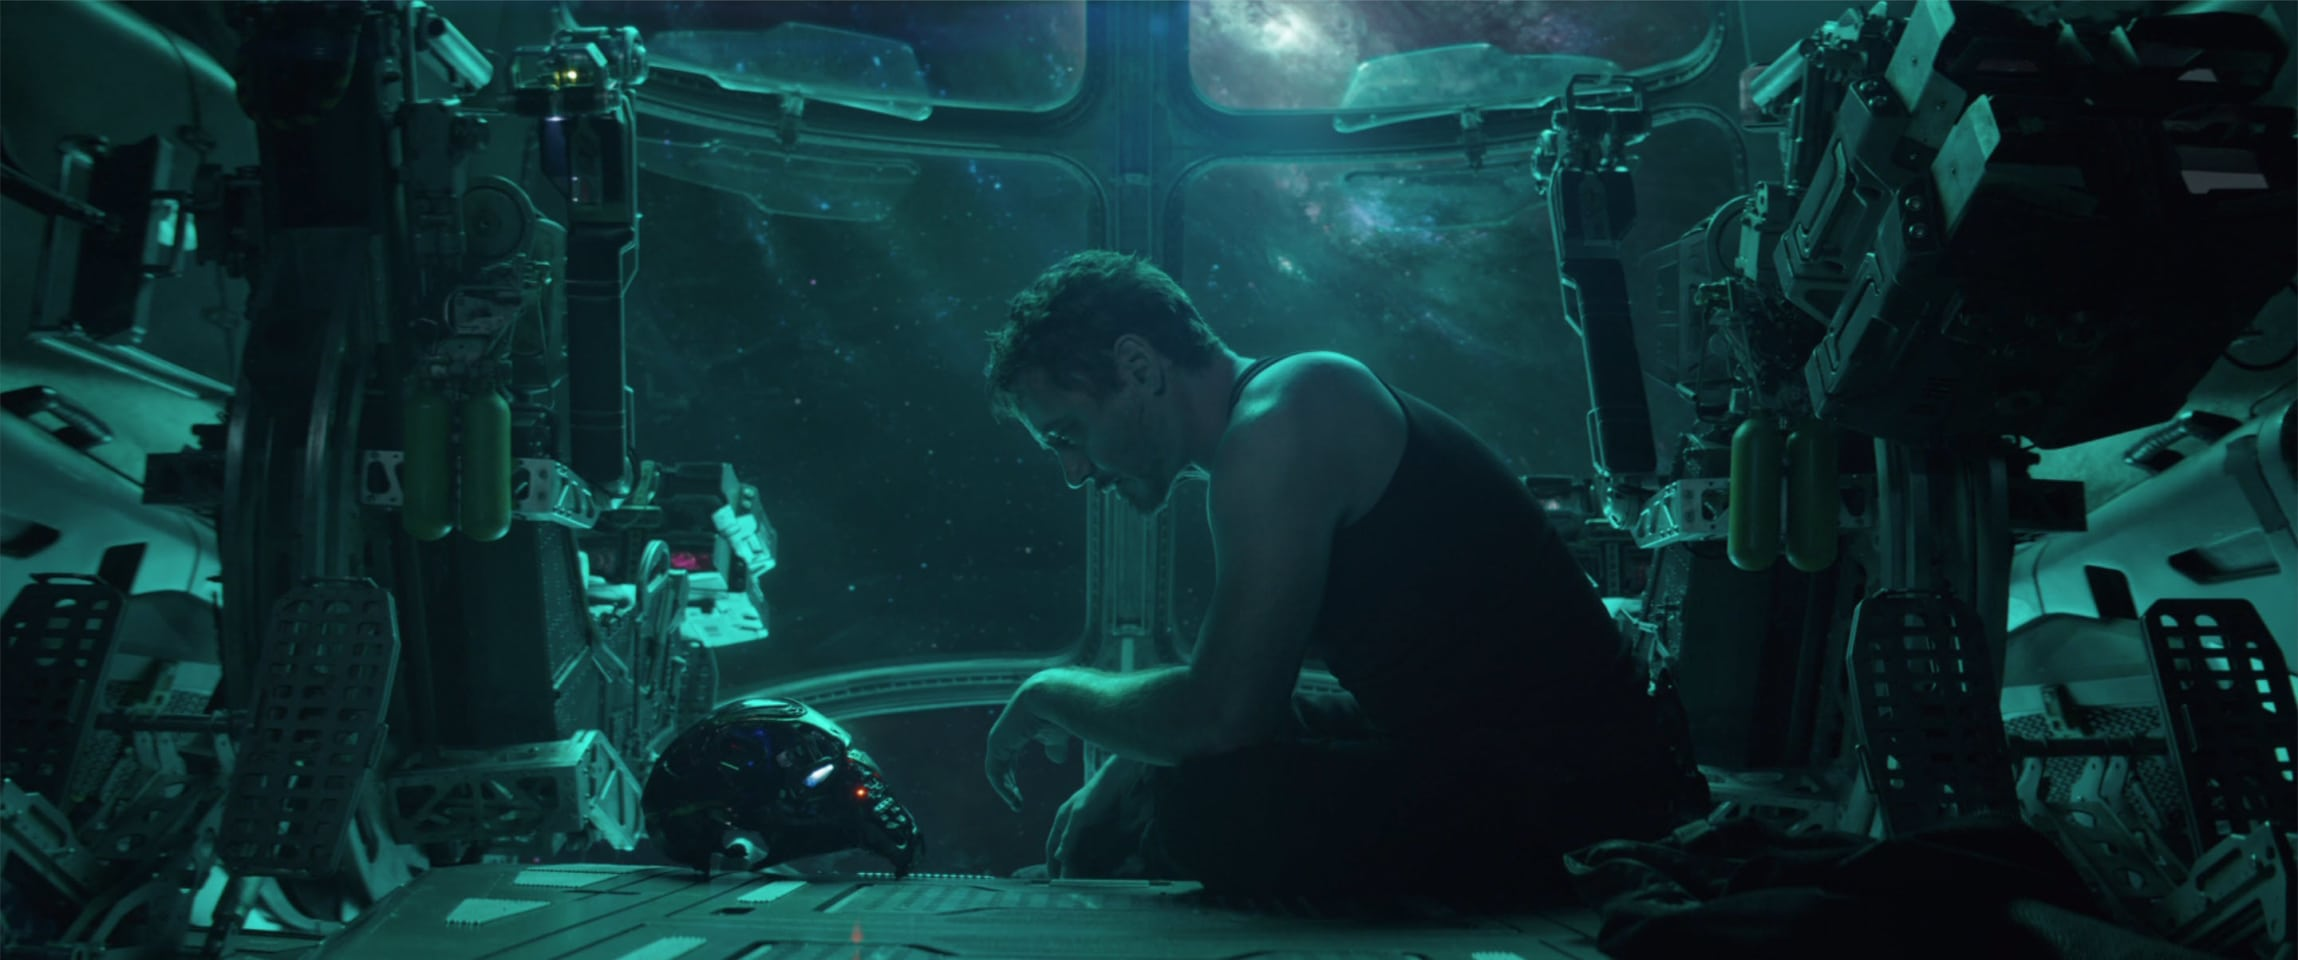 Avengers: Endgame | Showtimes, Tickets & Reviews - Atom Tickets